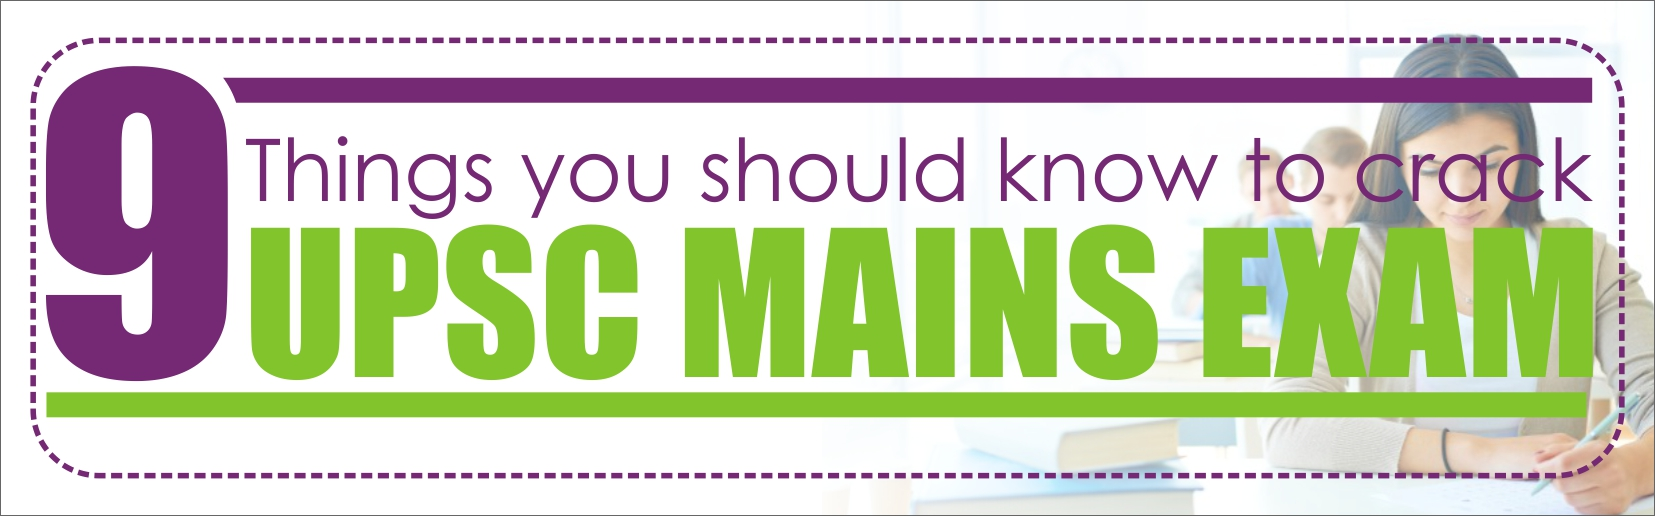 9 Things you should know to crack UPSC Mains Exam